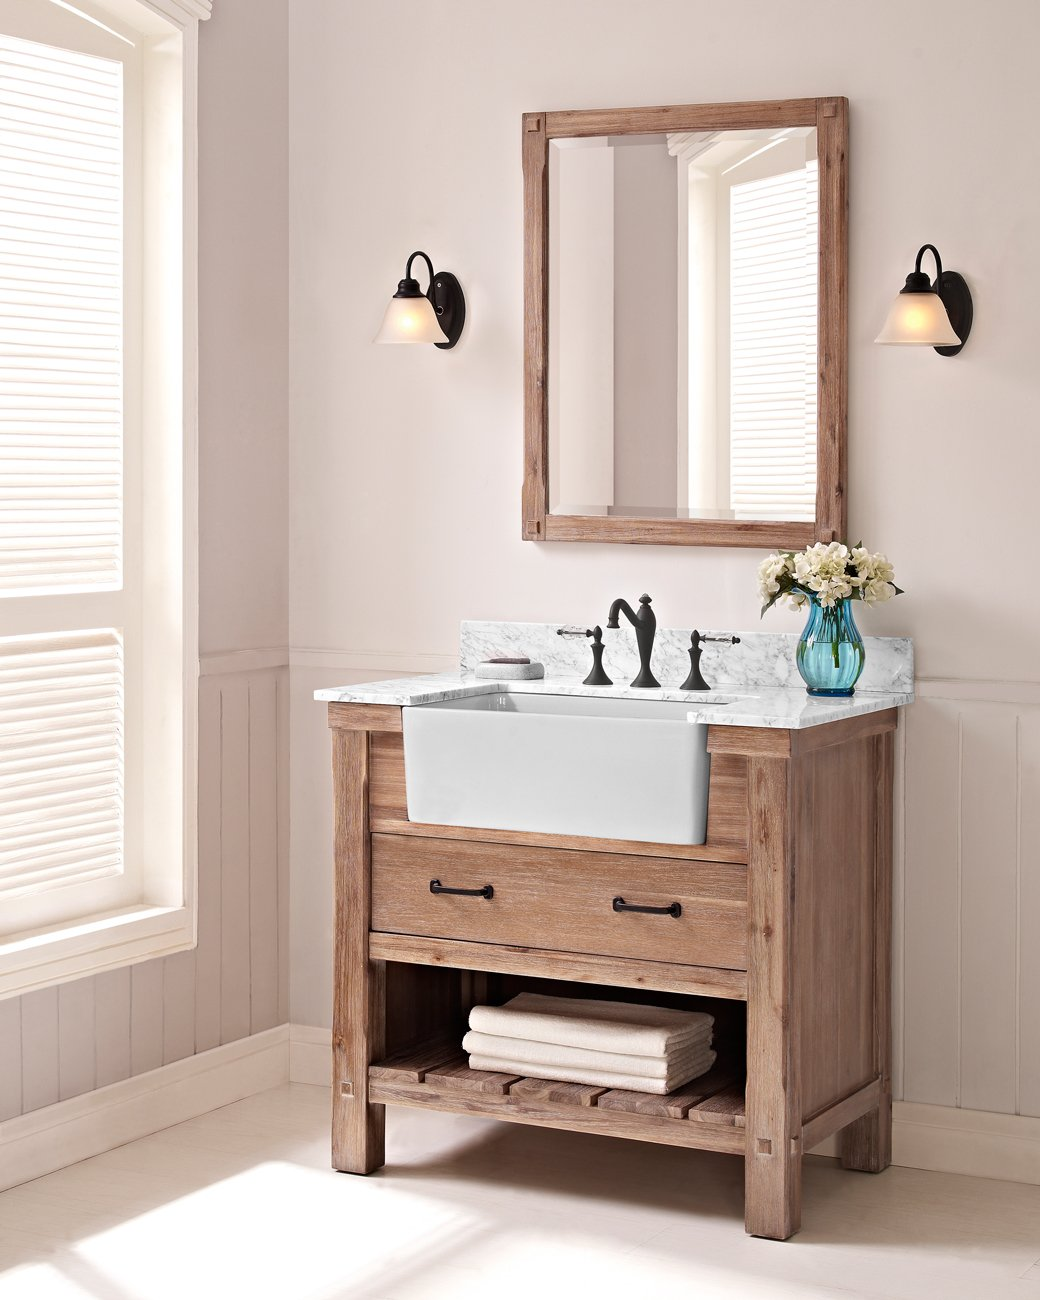 Fairmont Designs Bathroom Vanities Madeli Vanity Reviews Amp Fairmont Bathroom Vanities